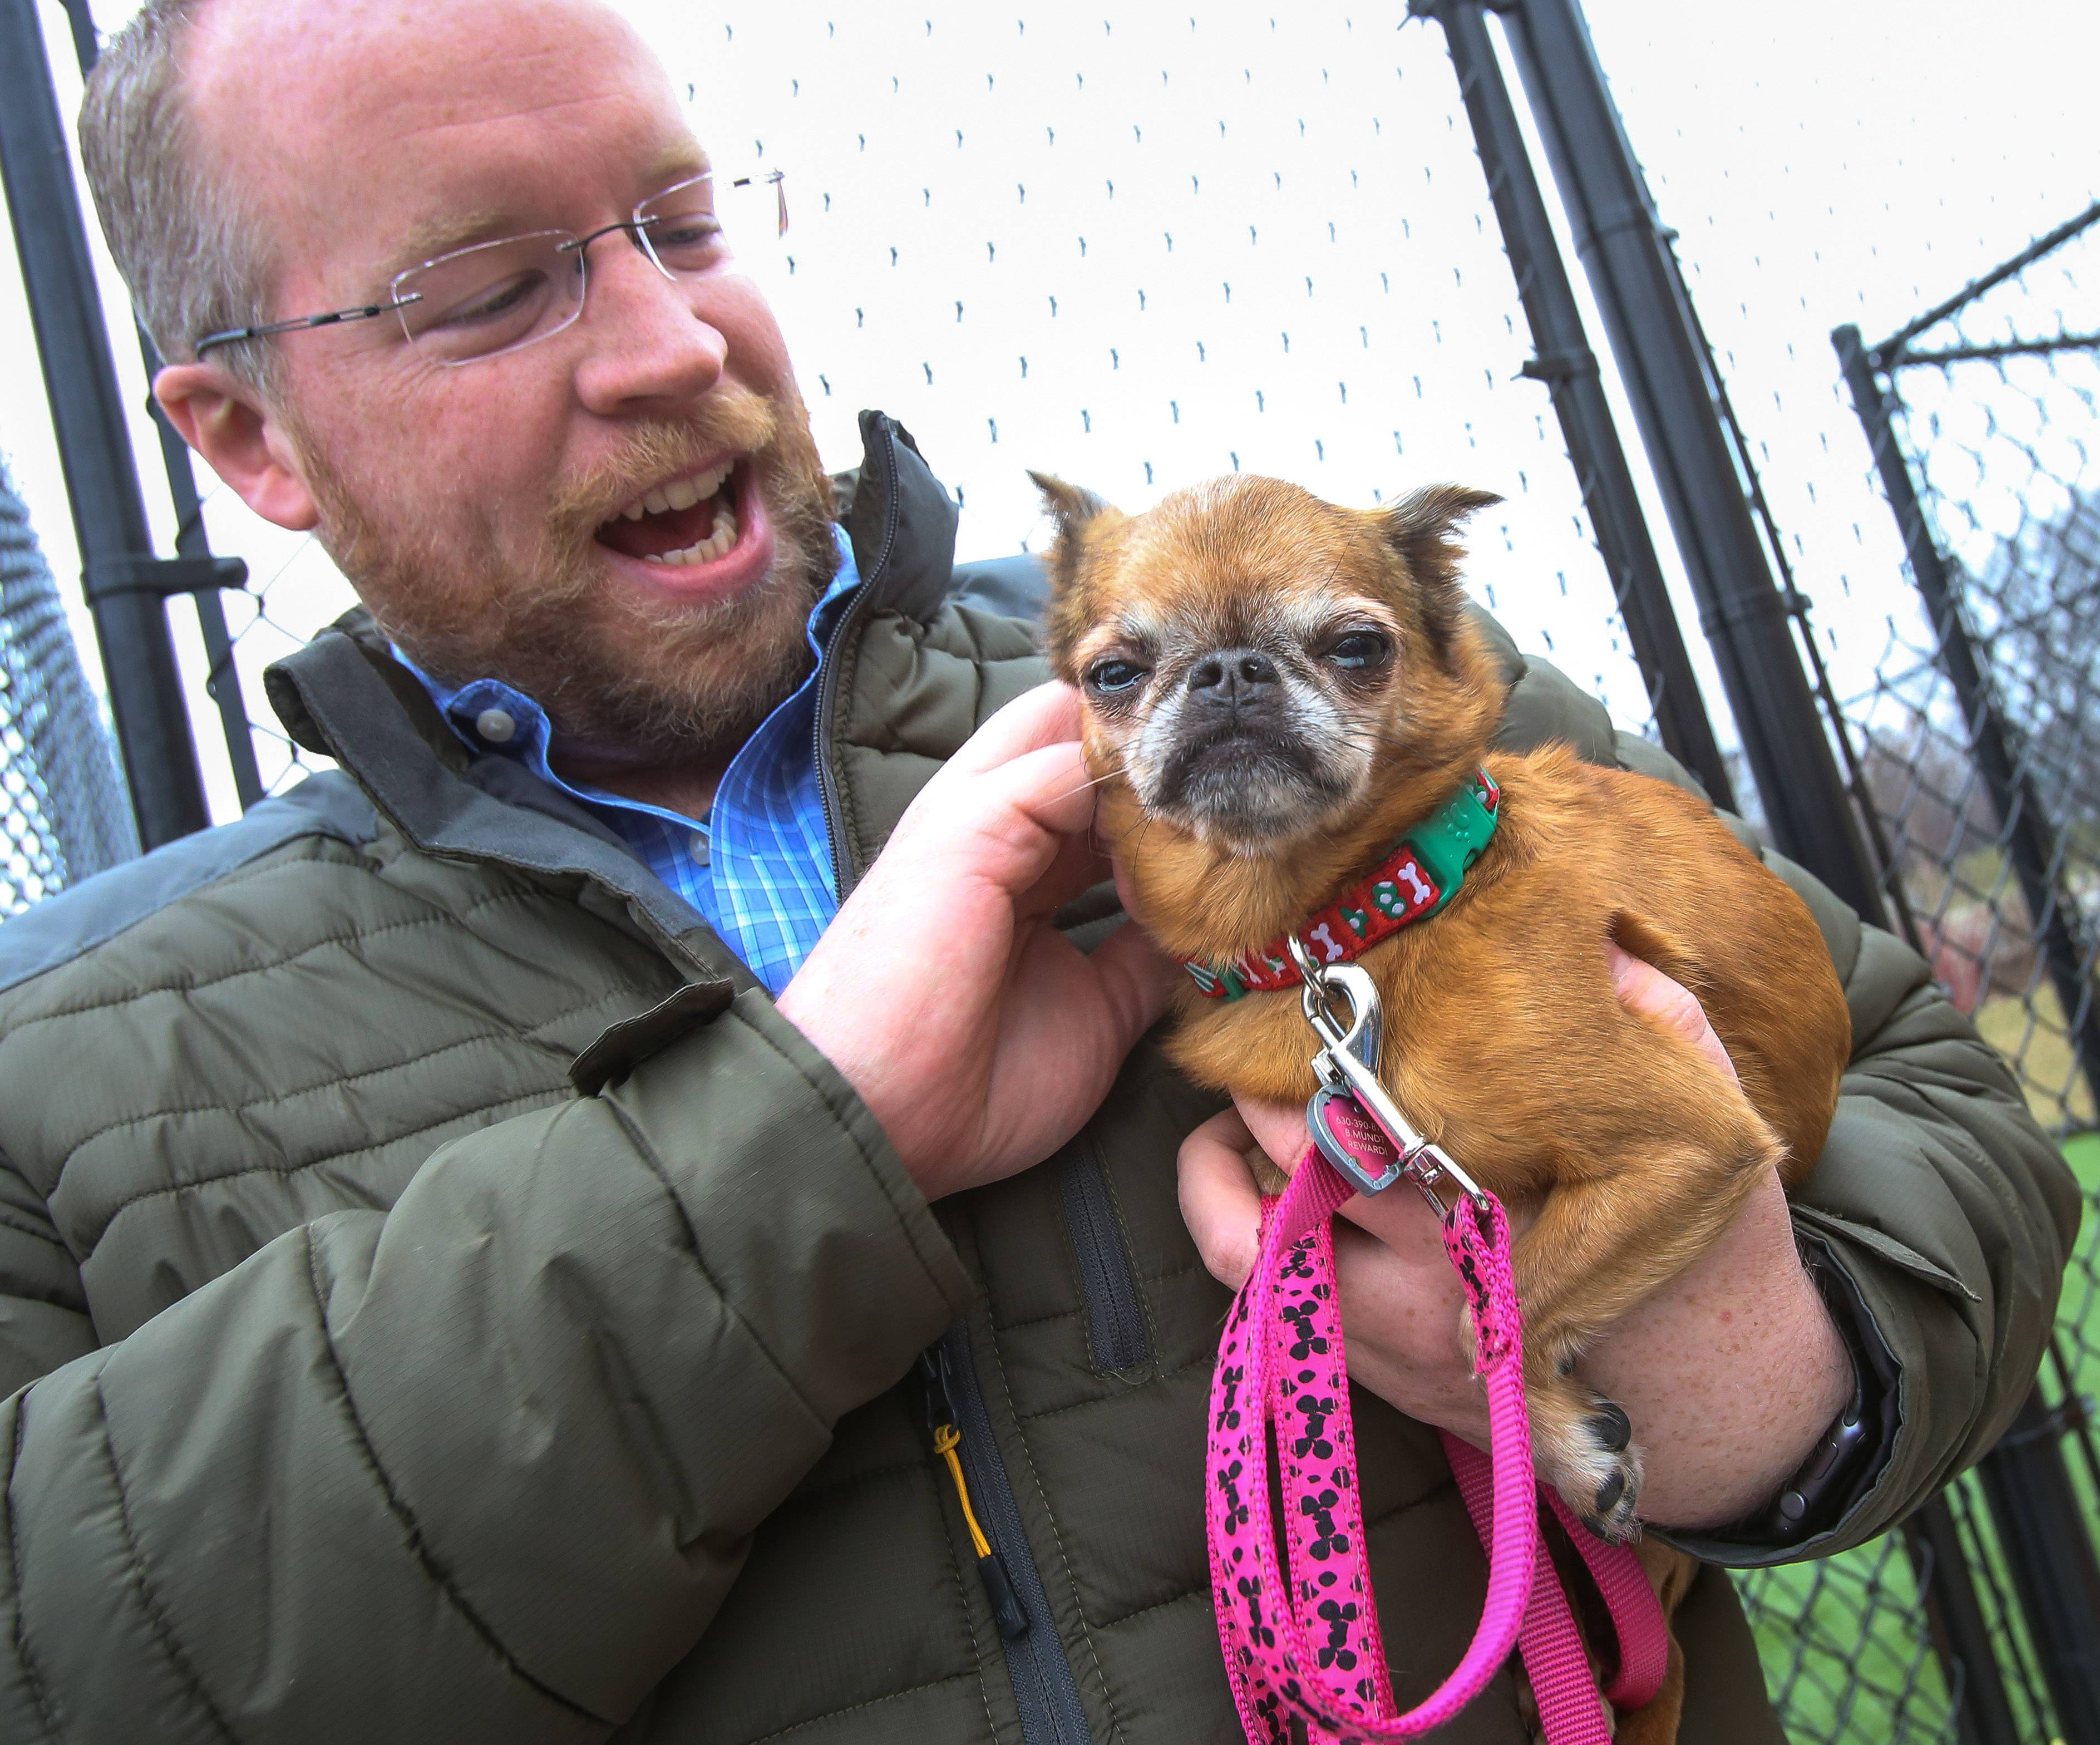 Bryan Mundt of Bolingbrook holds his rescue dog, Batty Boop, on Friday as he supports the introduction of a proposed state law that would require all pet stores in DuPage and Will counties to get their dogs, cats and rabbits from registered nonprofit animal controls, shelters or humane societies -- not from commercial breeders.